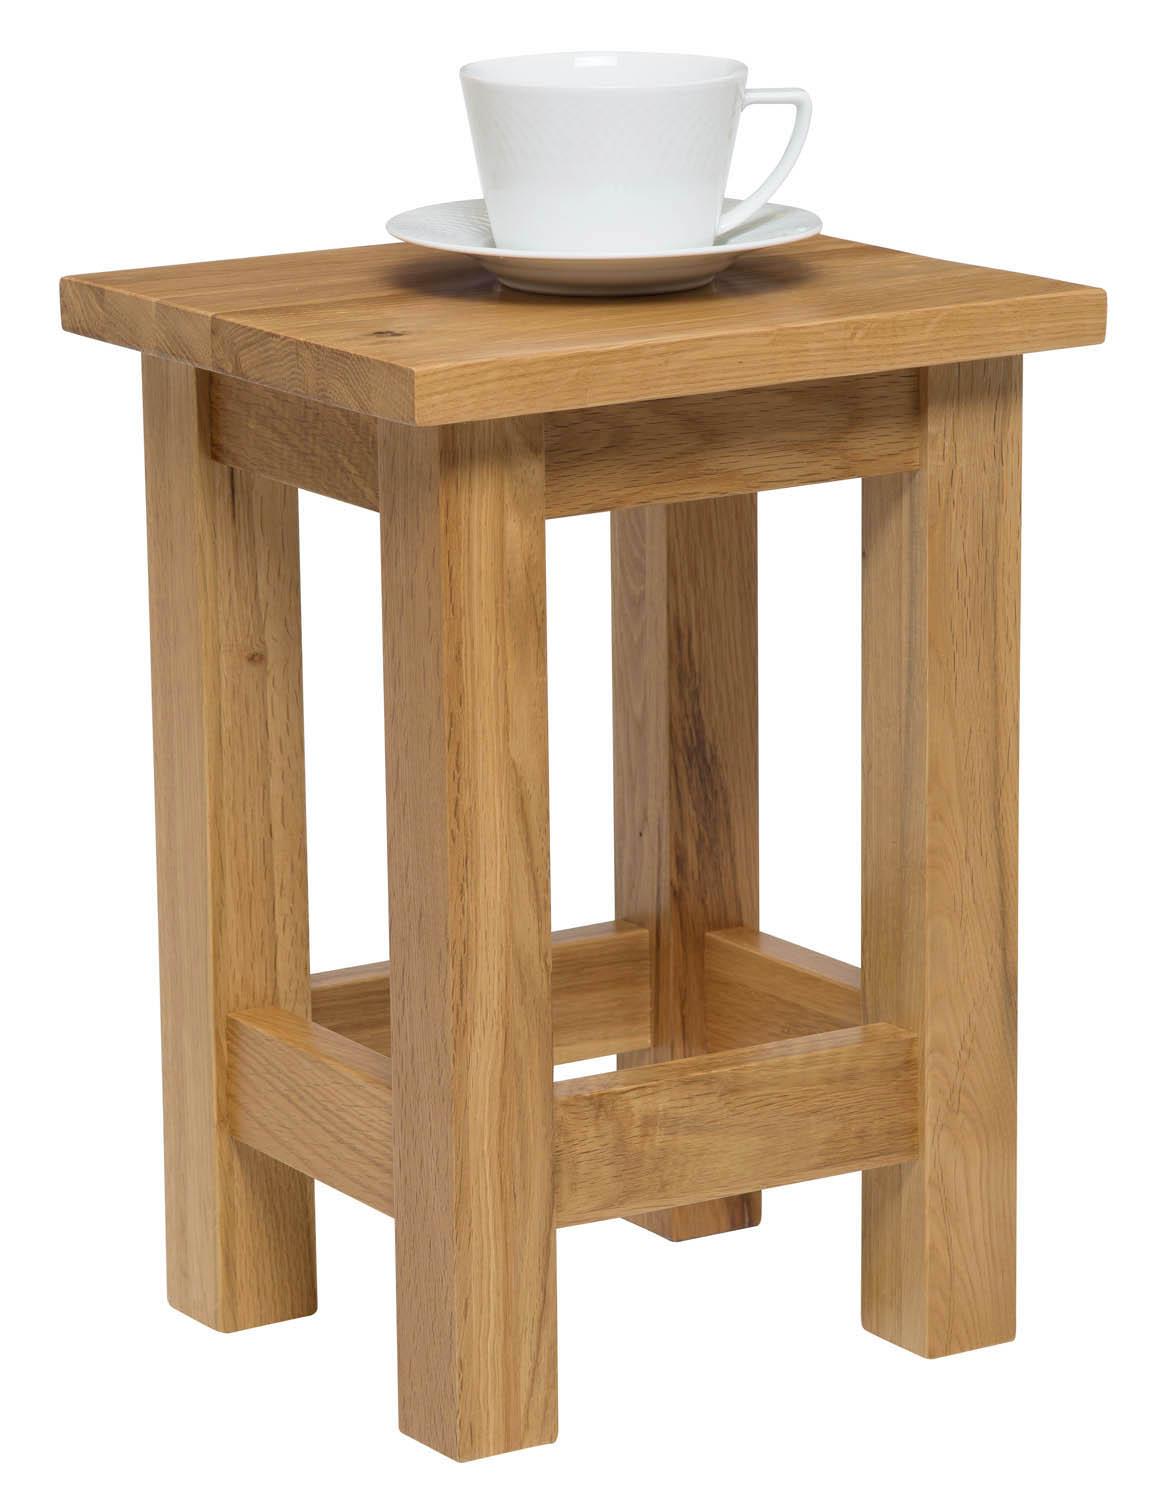 Small oak side table solid wood slim occasional coffee for Small wood end table